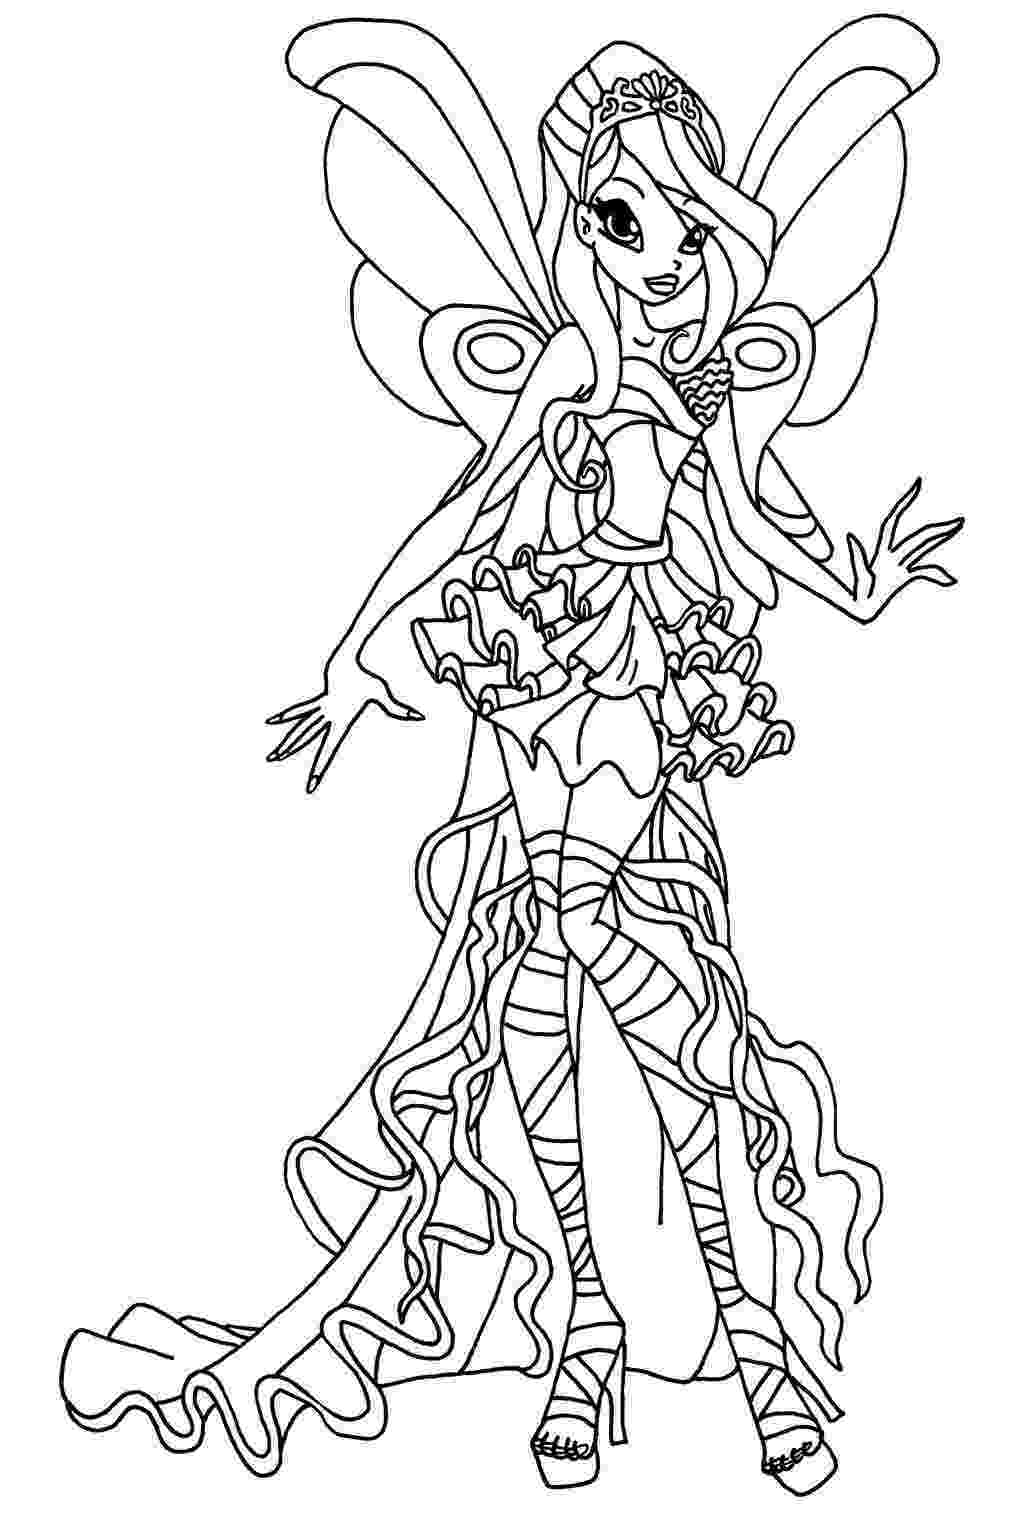 colouring pages for winx free printable winx coloring pages for kids cool2bkids colouring for winx pages